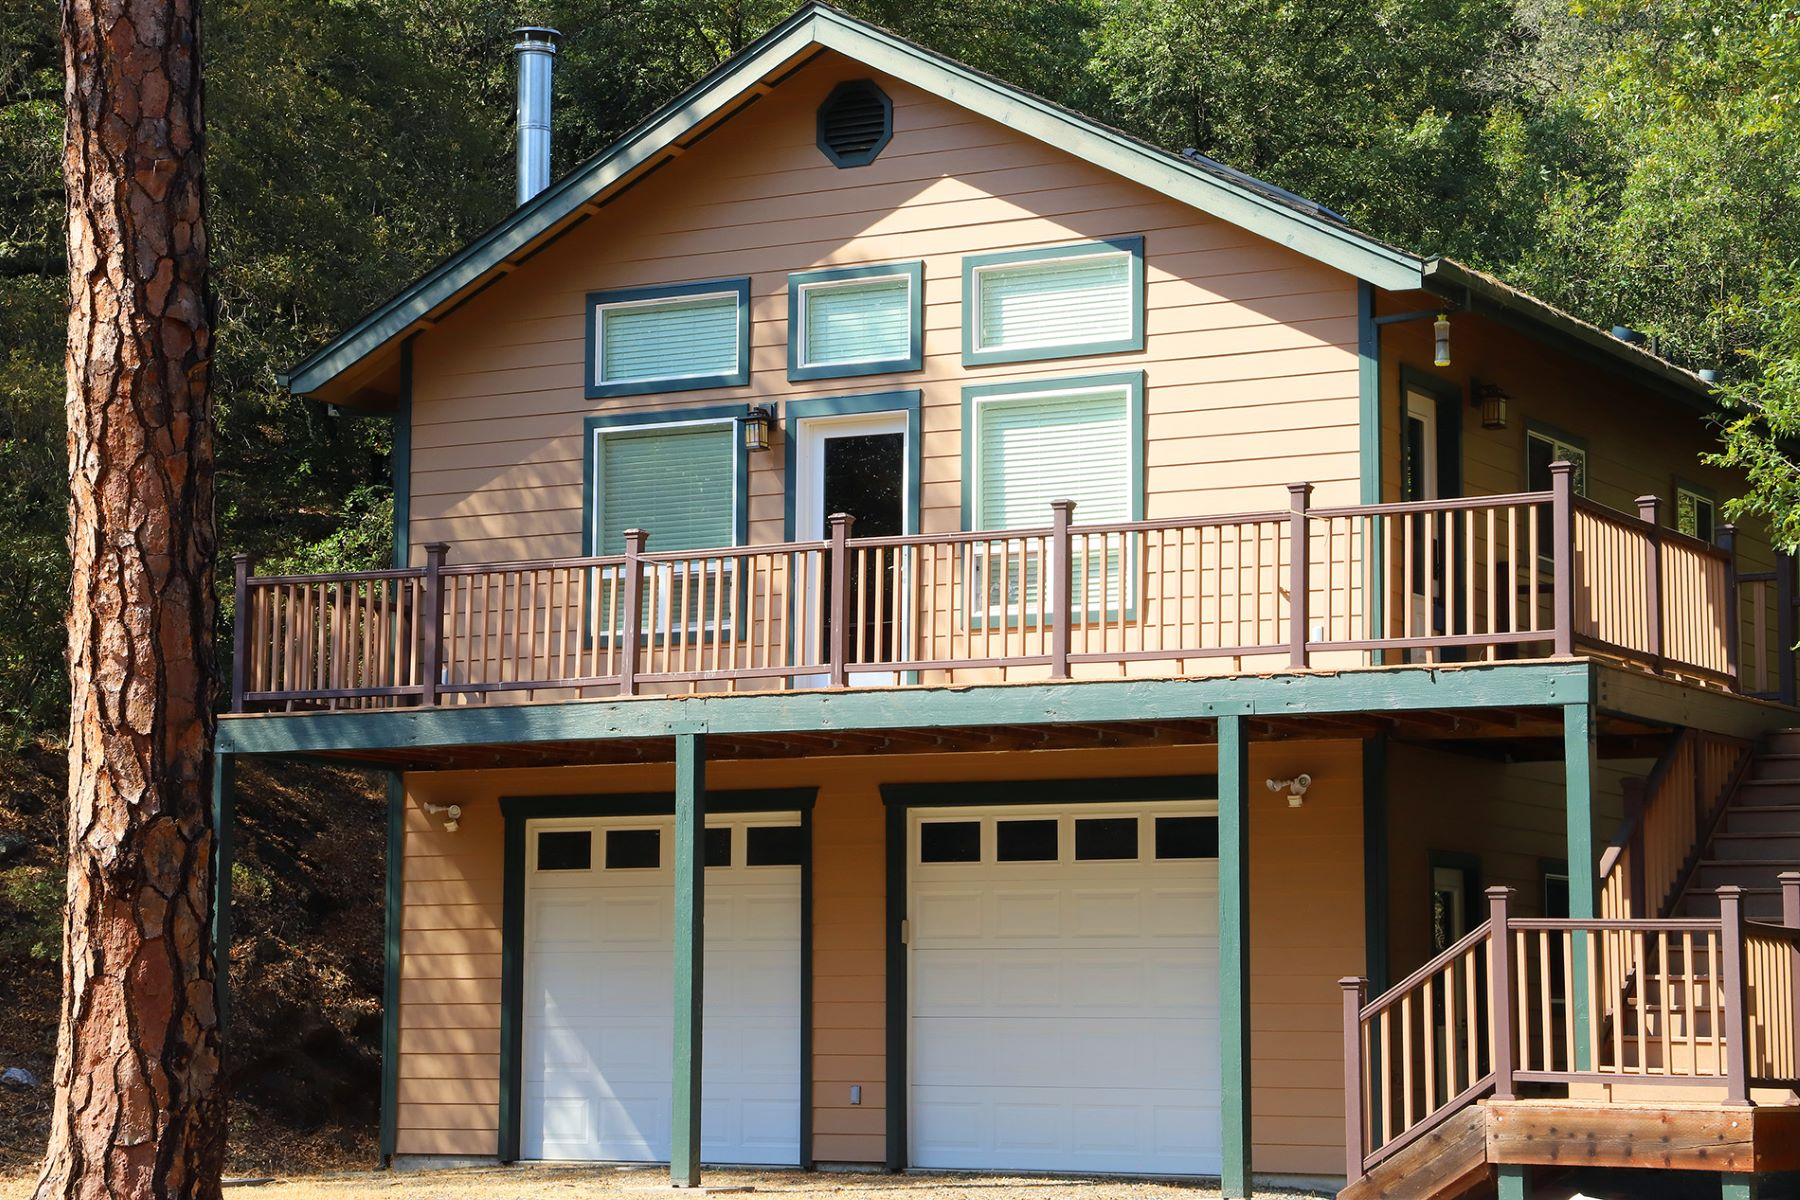 Single Family Home for Active at Private Home on 7+ Acres 15571 Sutter Creek Road Sutter Creek, California 95685 United States